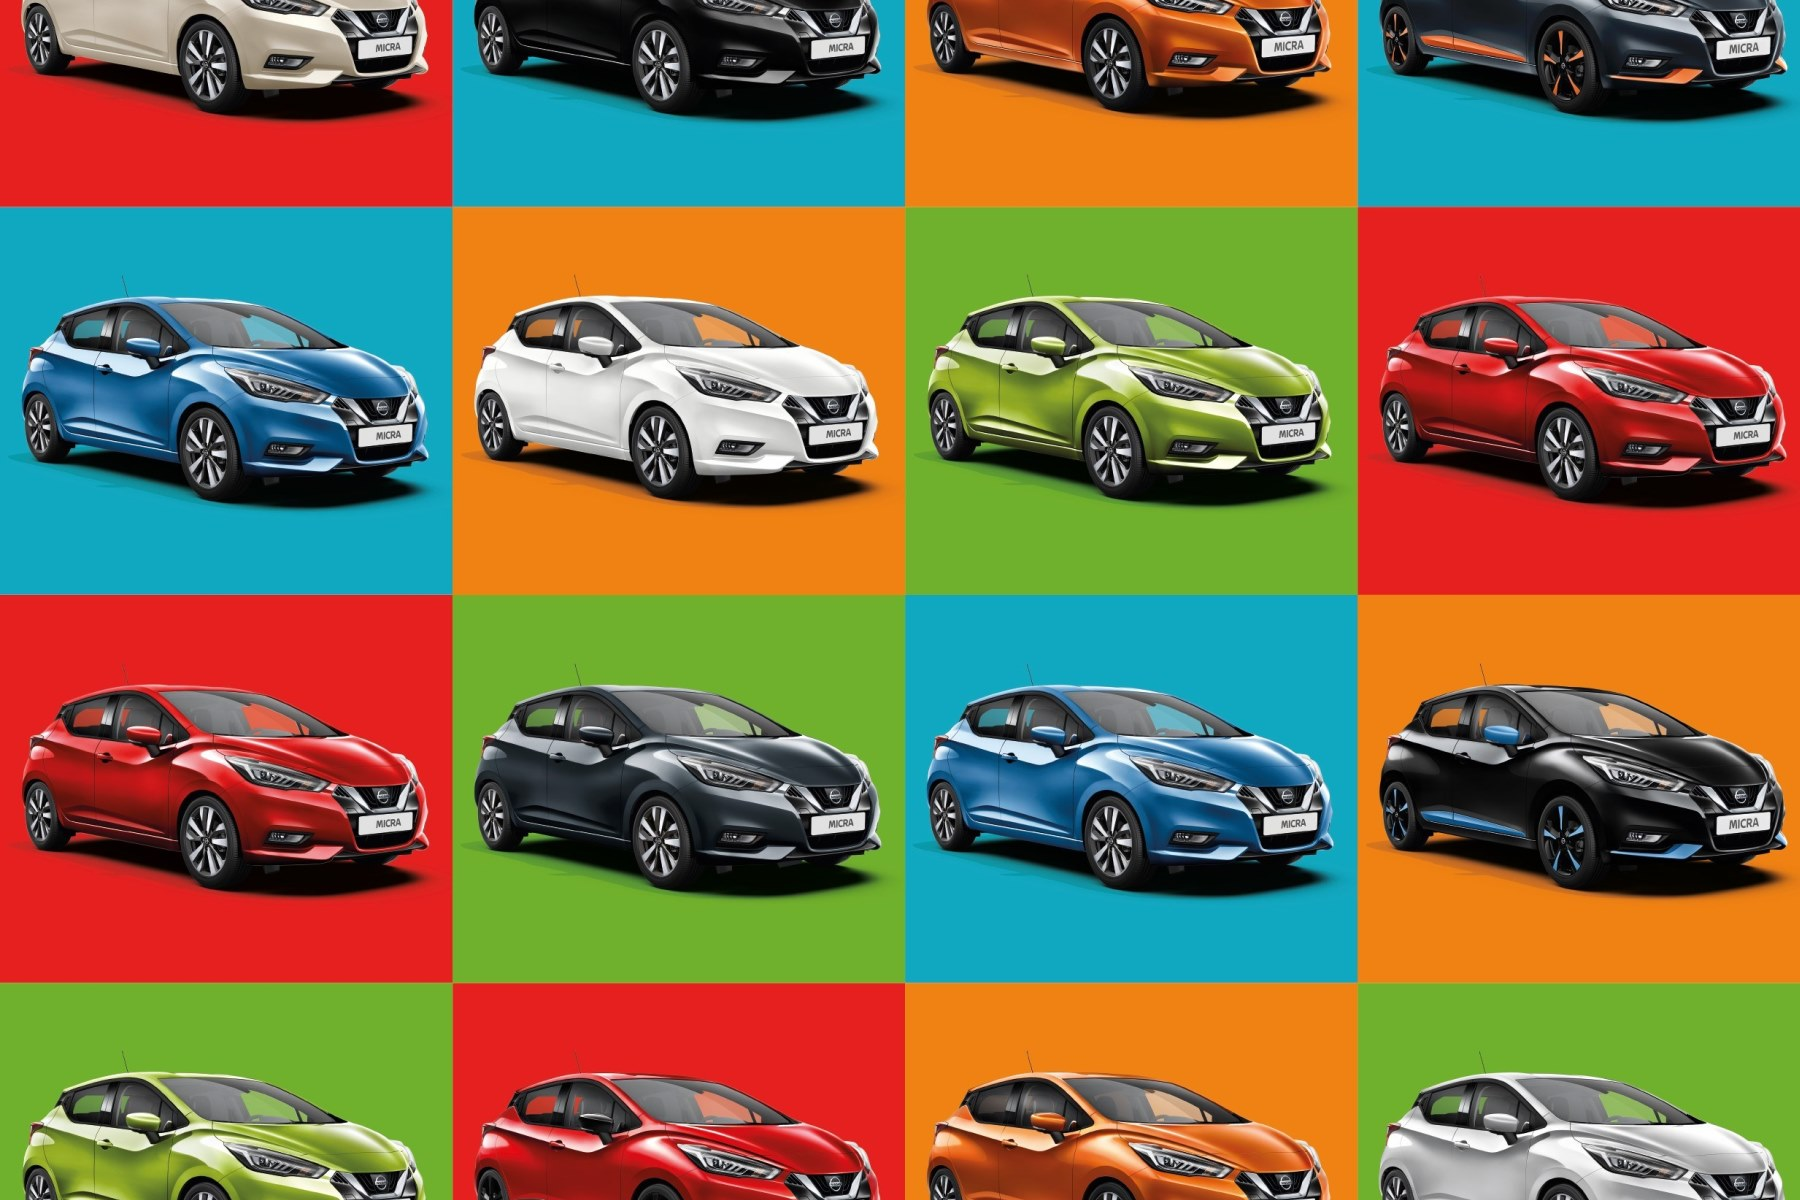 Nissan Study Finds 86 Percent of European Drivers Have Cars with Wrong Colors